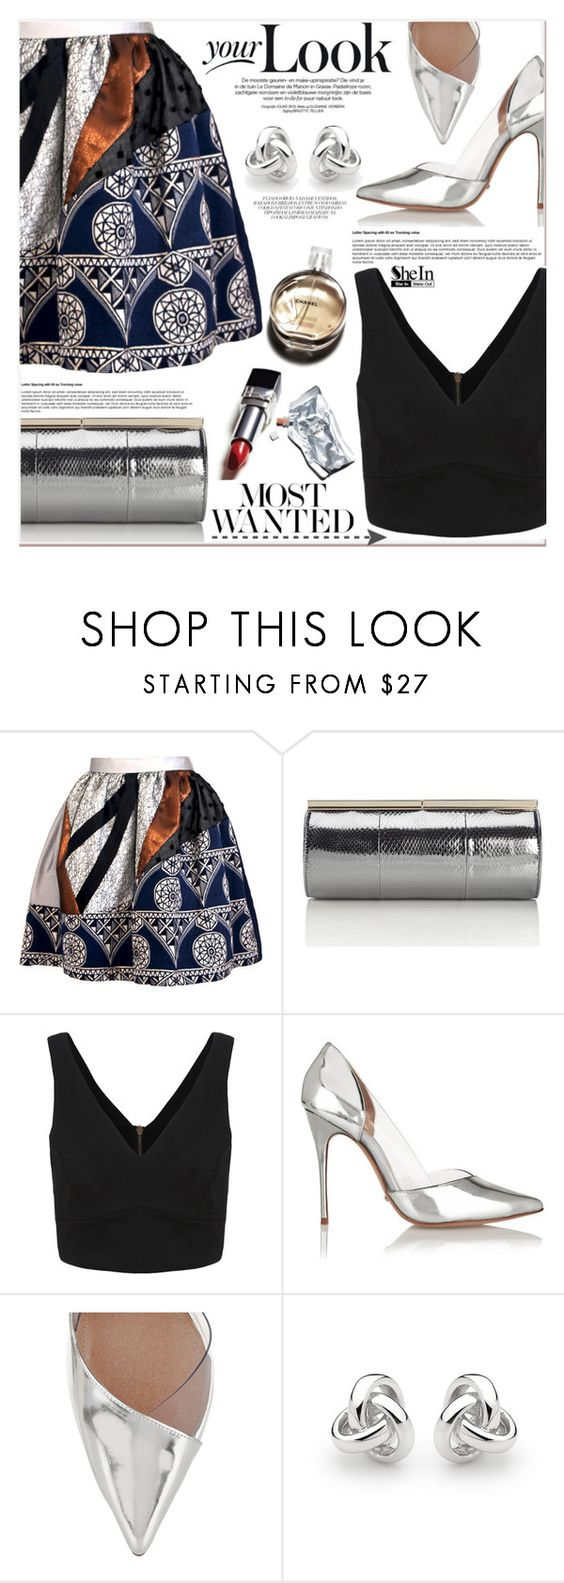 """""""Enjoy life today, Yesterday was gone & Tomorrow may never come"""" by razone ❤ liked on Polyvore featuring Joana Almagro, Jimmy Choo, Gianvito Rossi, Schutz, Prtty Peaushun, Hermès and Georgini"""